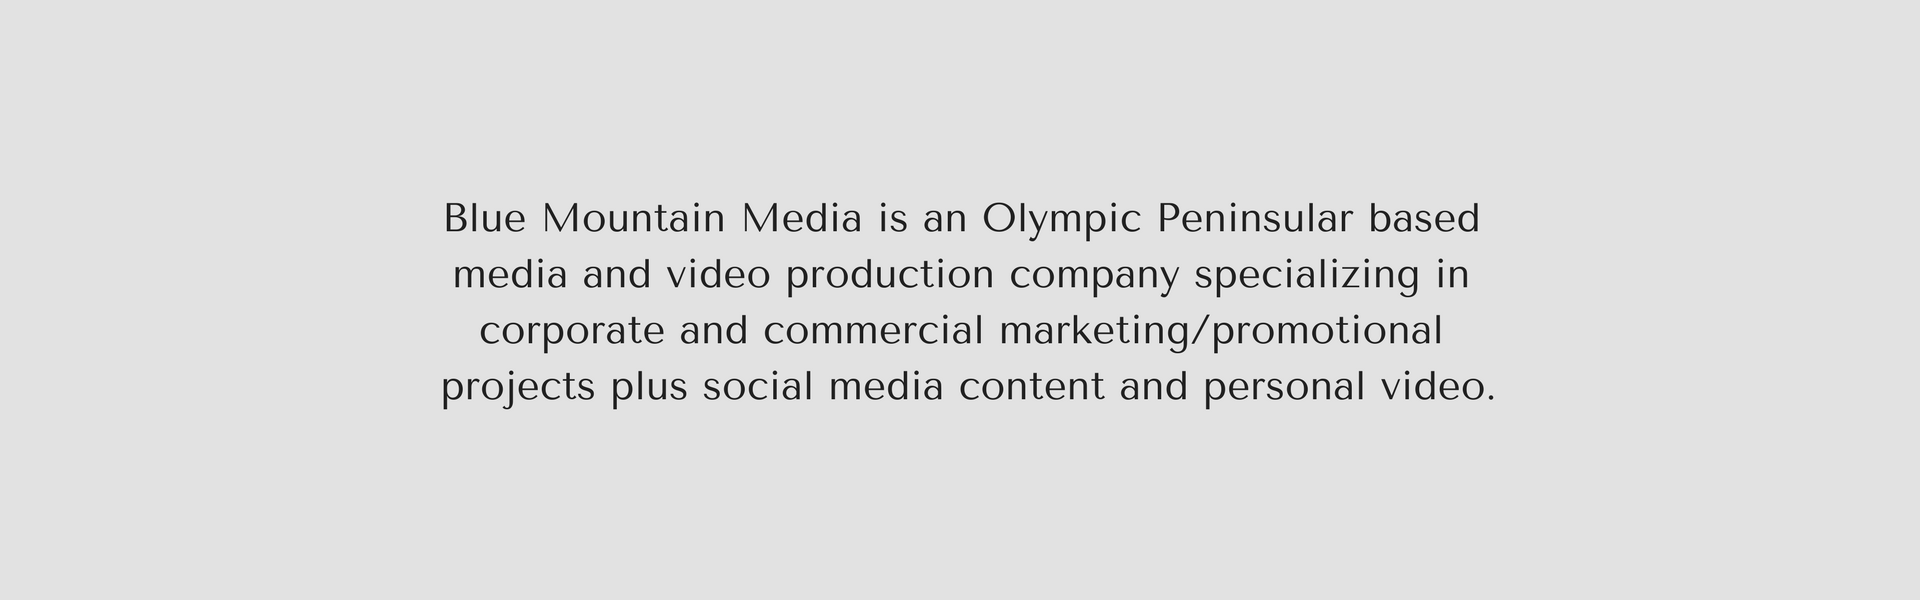 Blue Mountain Media is